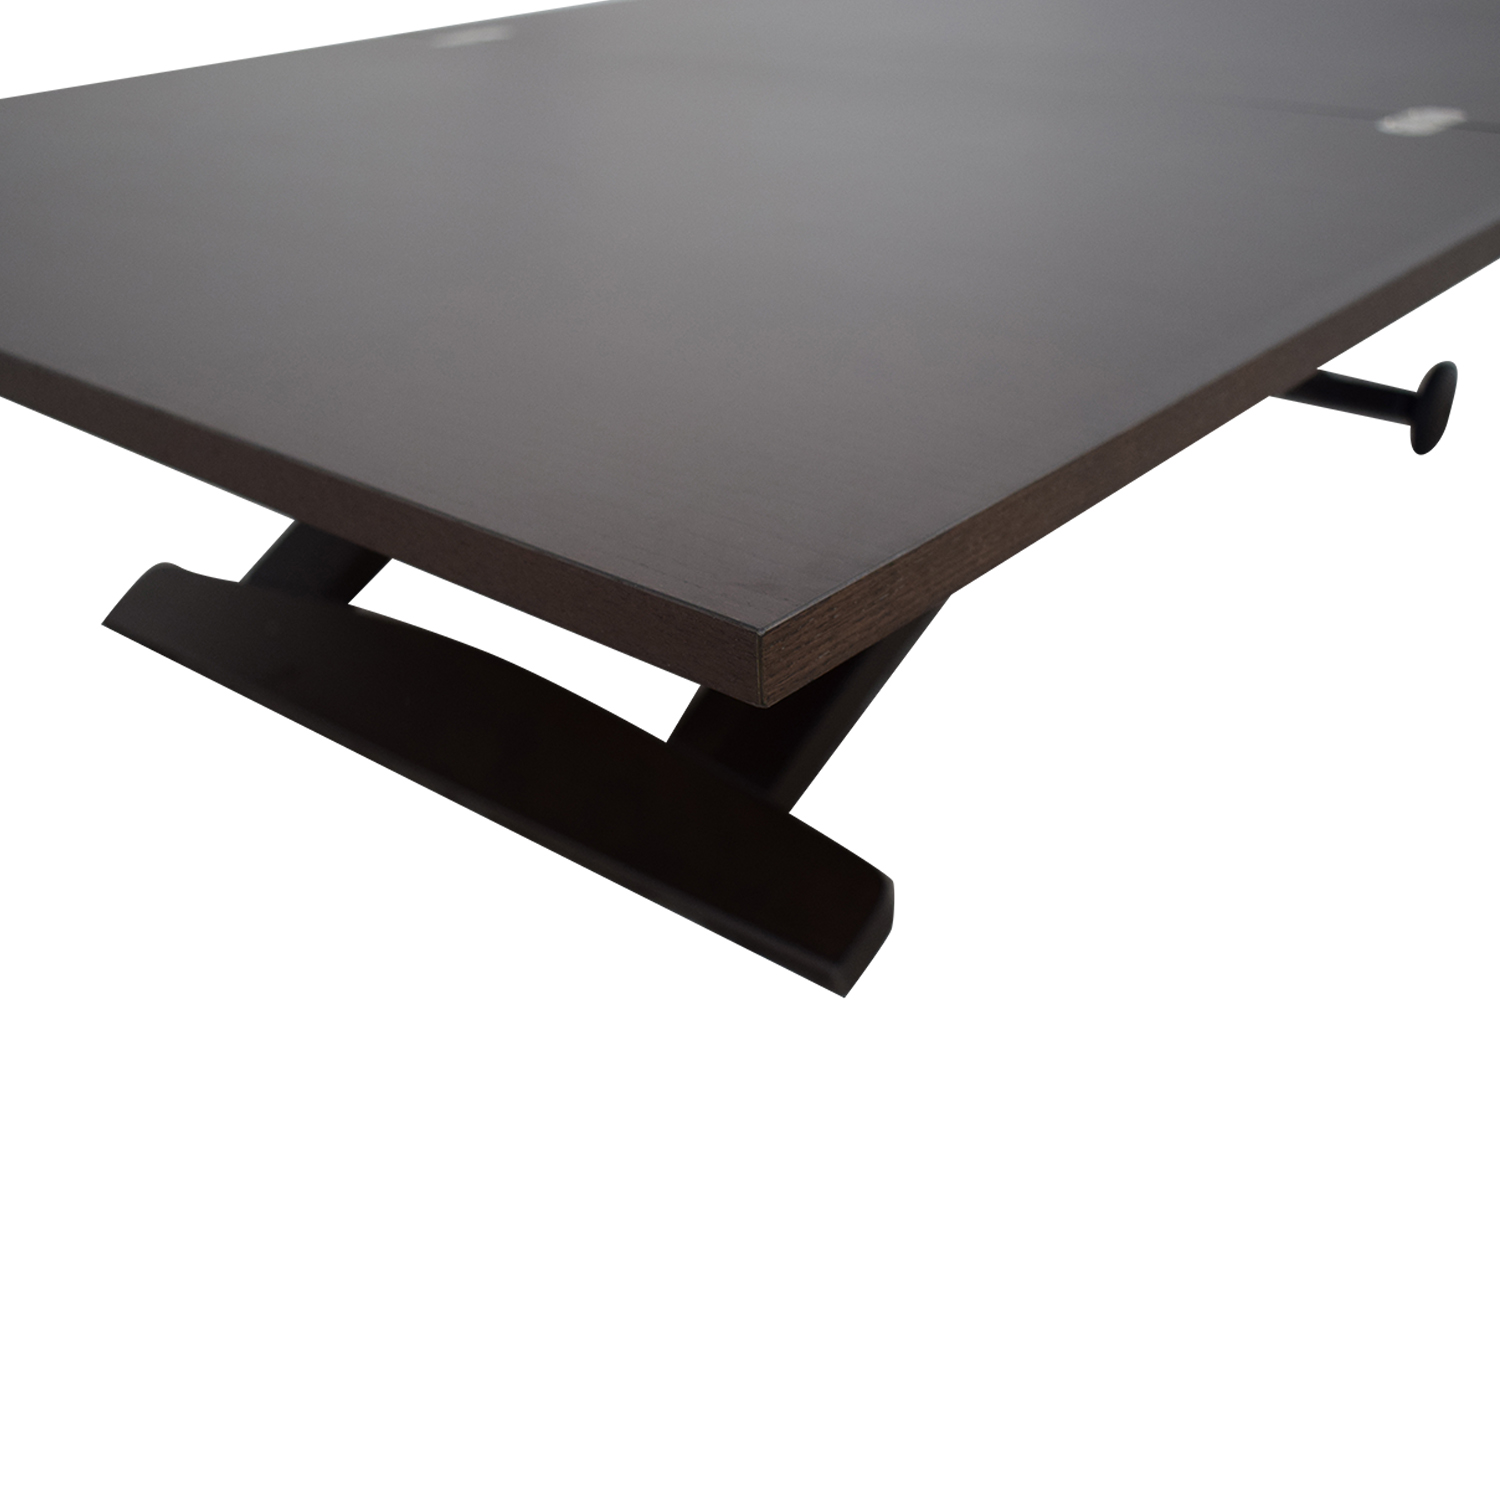 Calligaris Calligaris Folding Coffee Table Coffee Tables